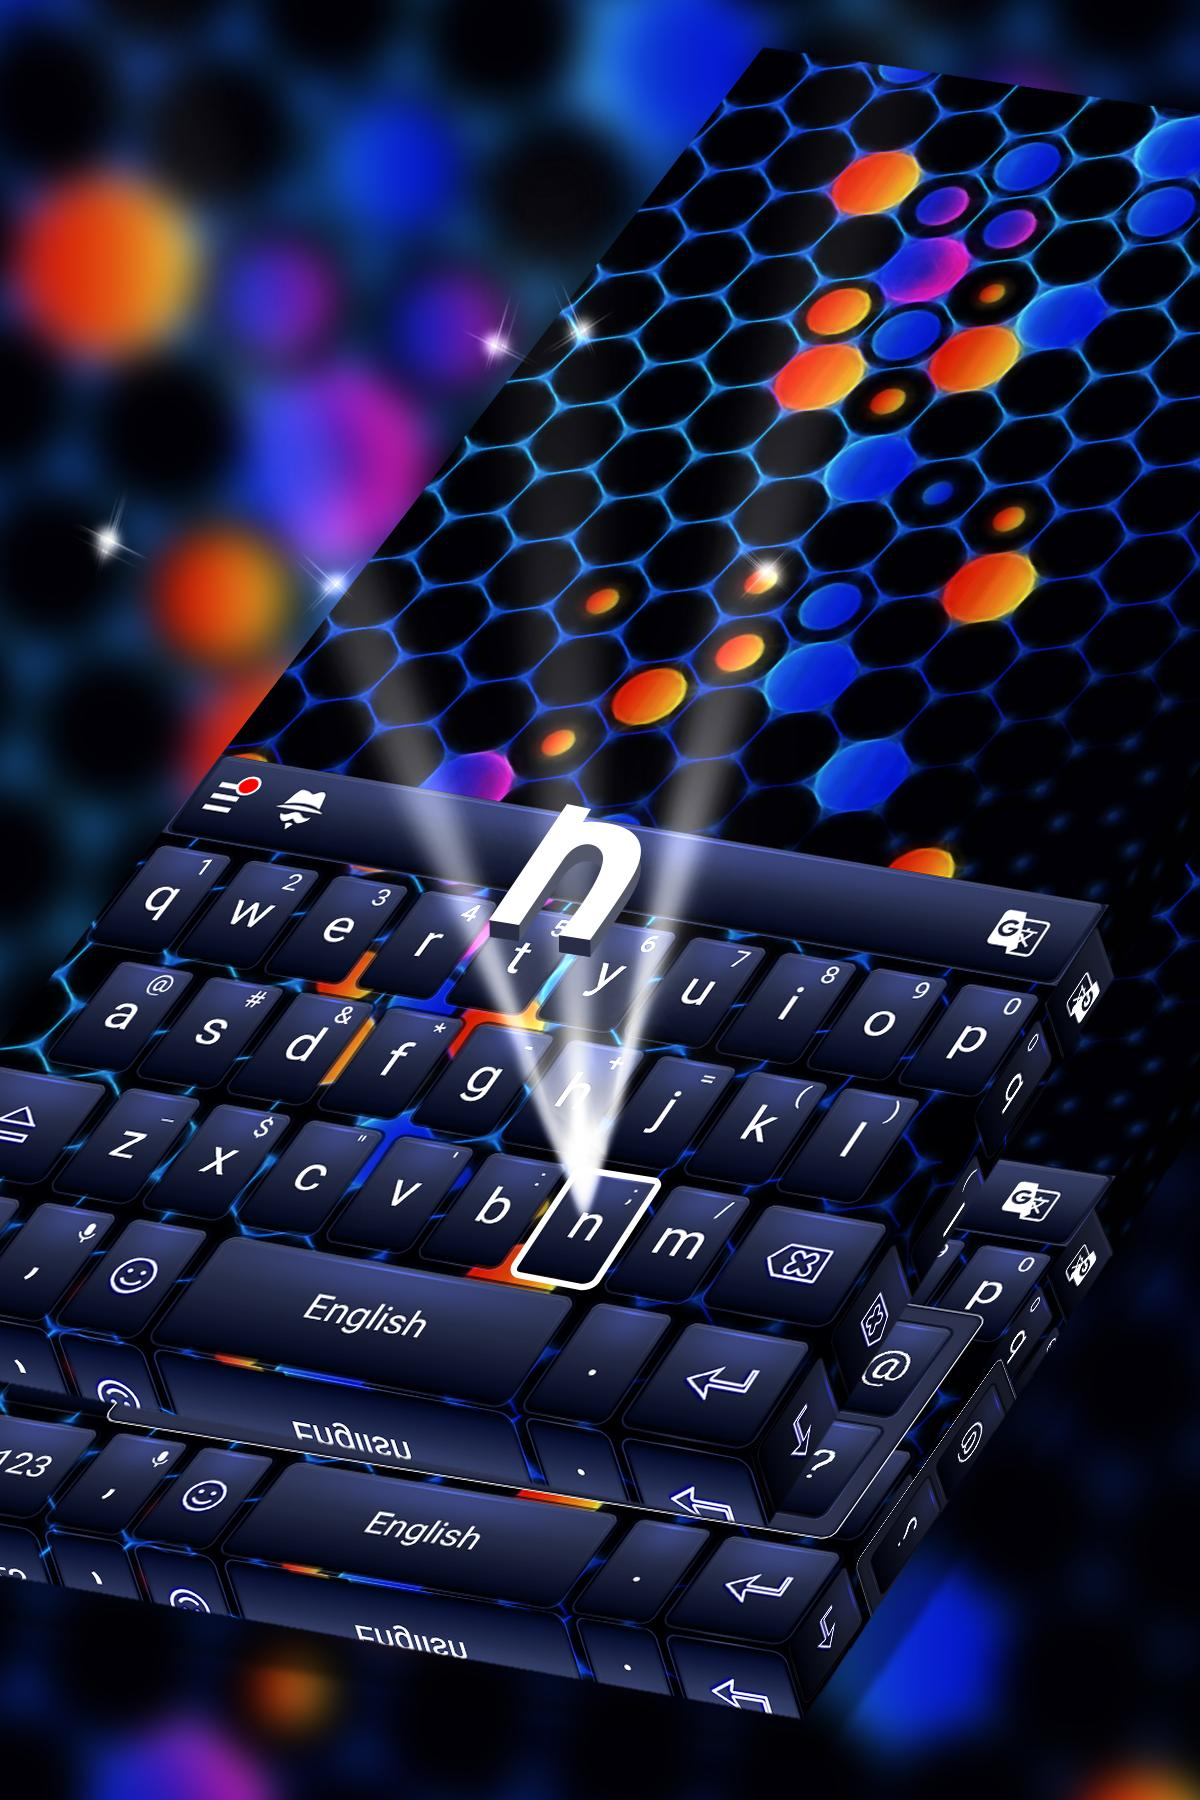 New Keyboard 2019 for Android - APK Download